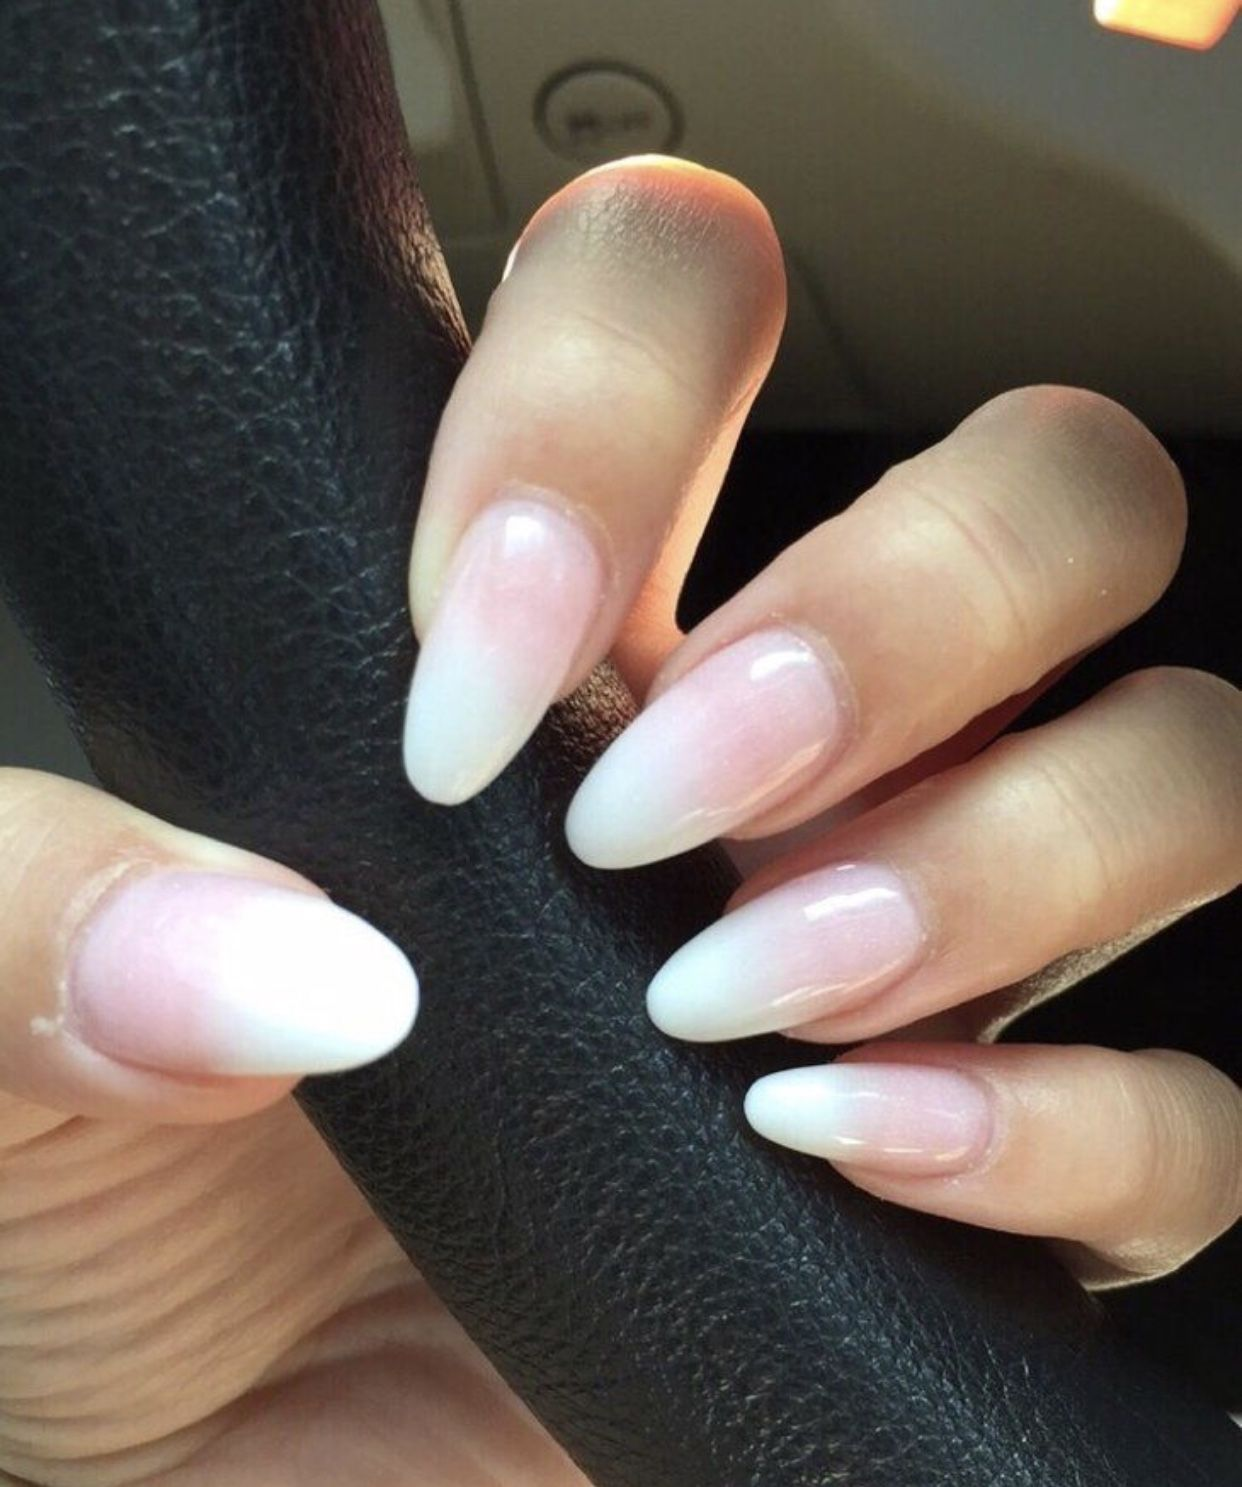 Pin By Steph On Nails Ombre Gel Nails Oval Nails Ambre Nails